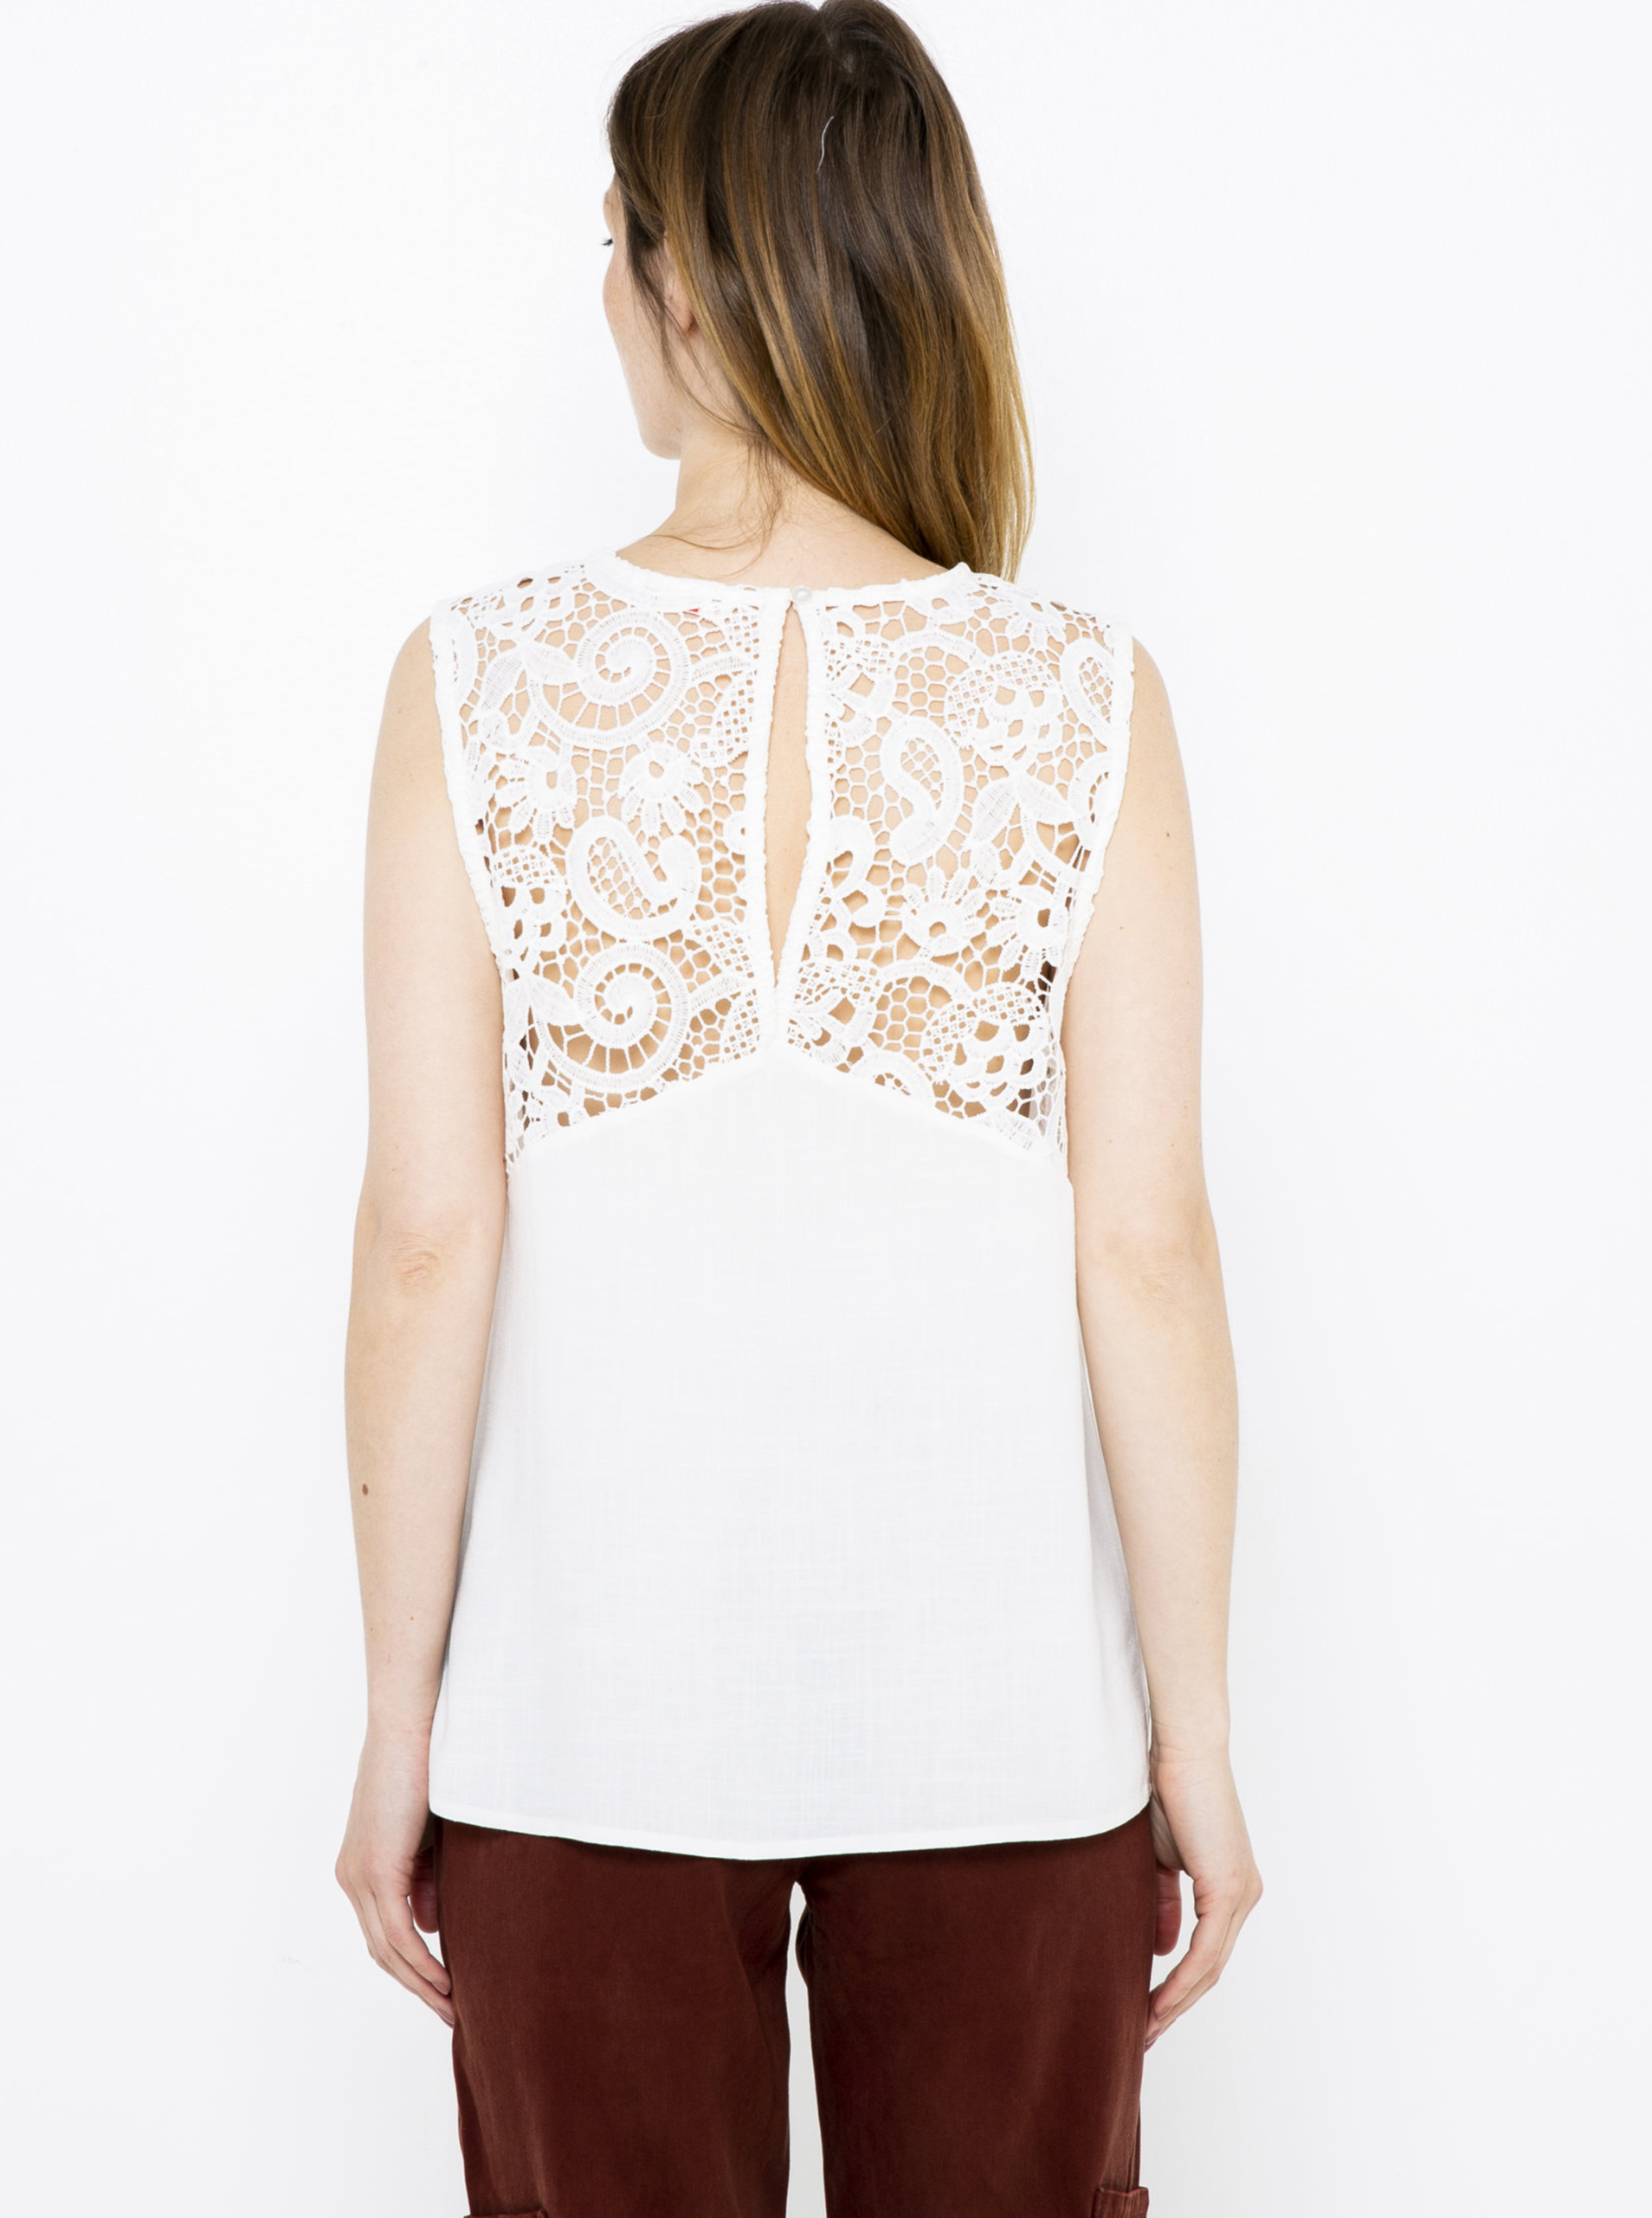 CAMAIEU white blouse with lace